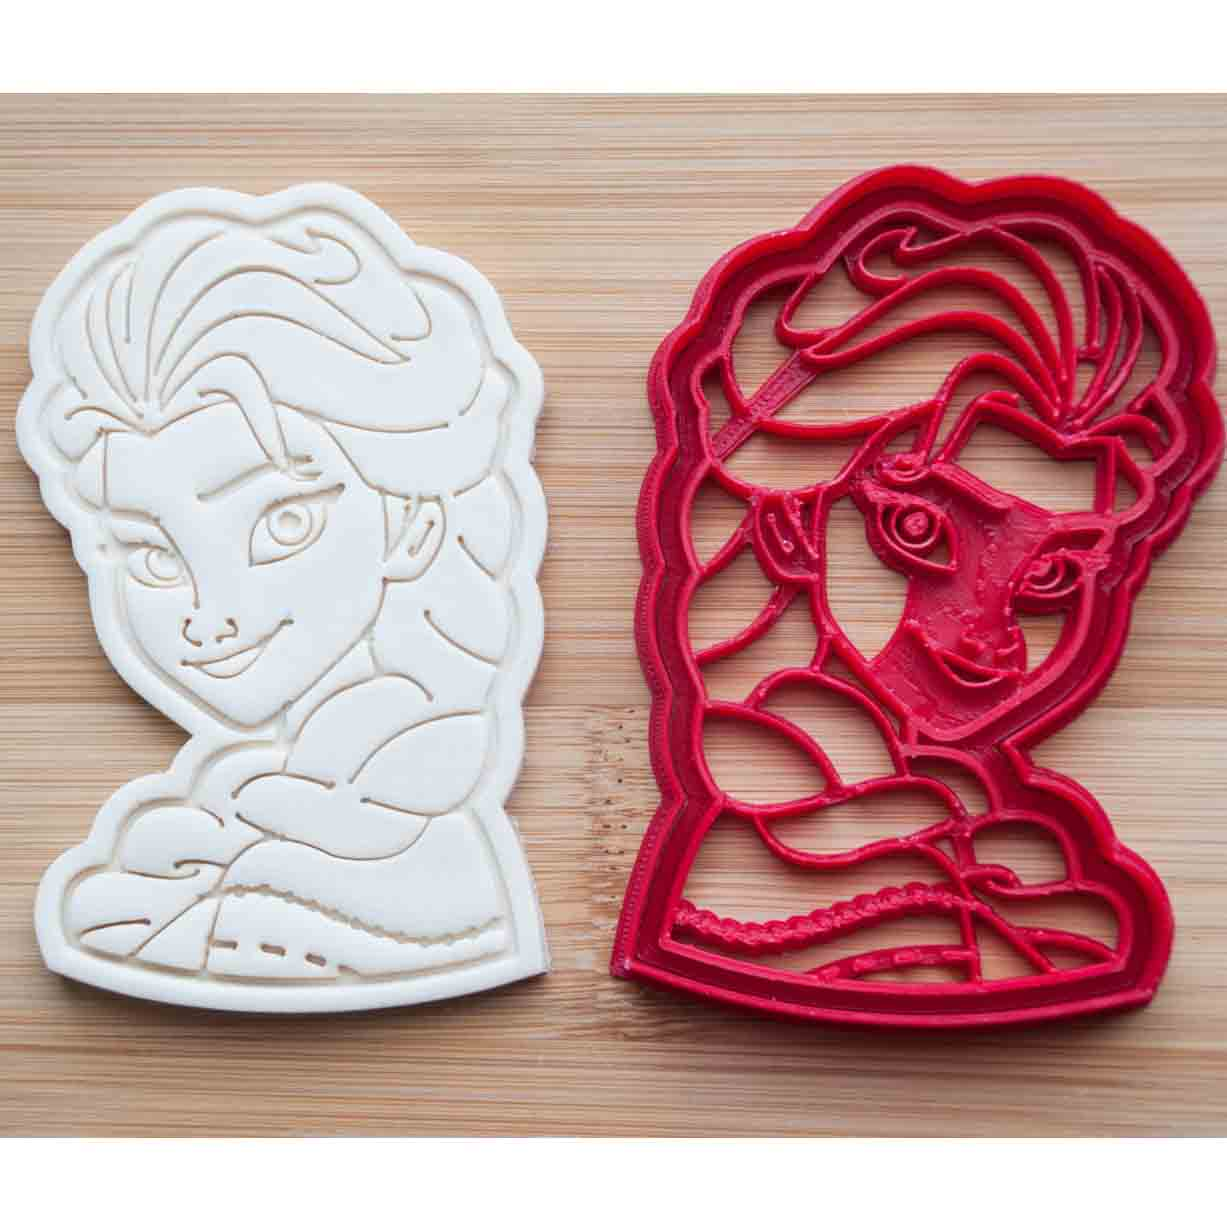 disney frozen cookie cutter